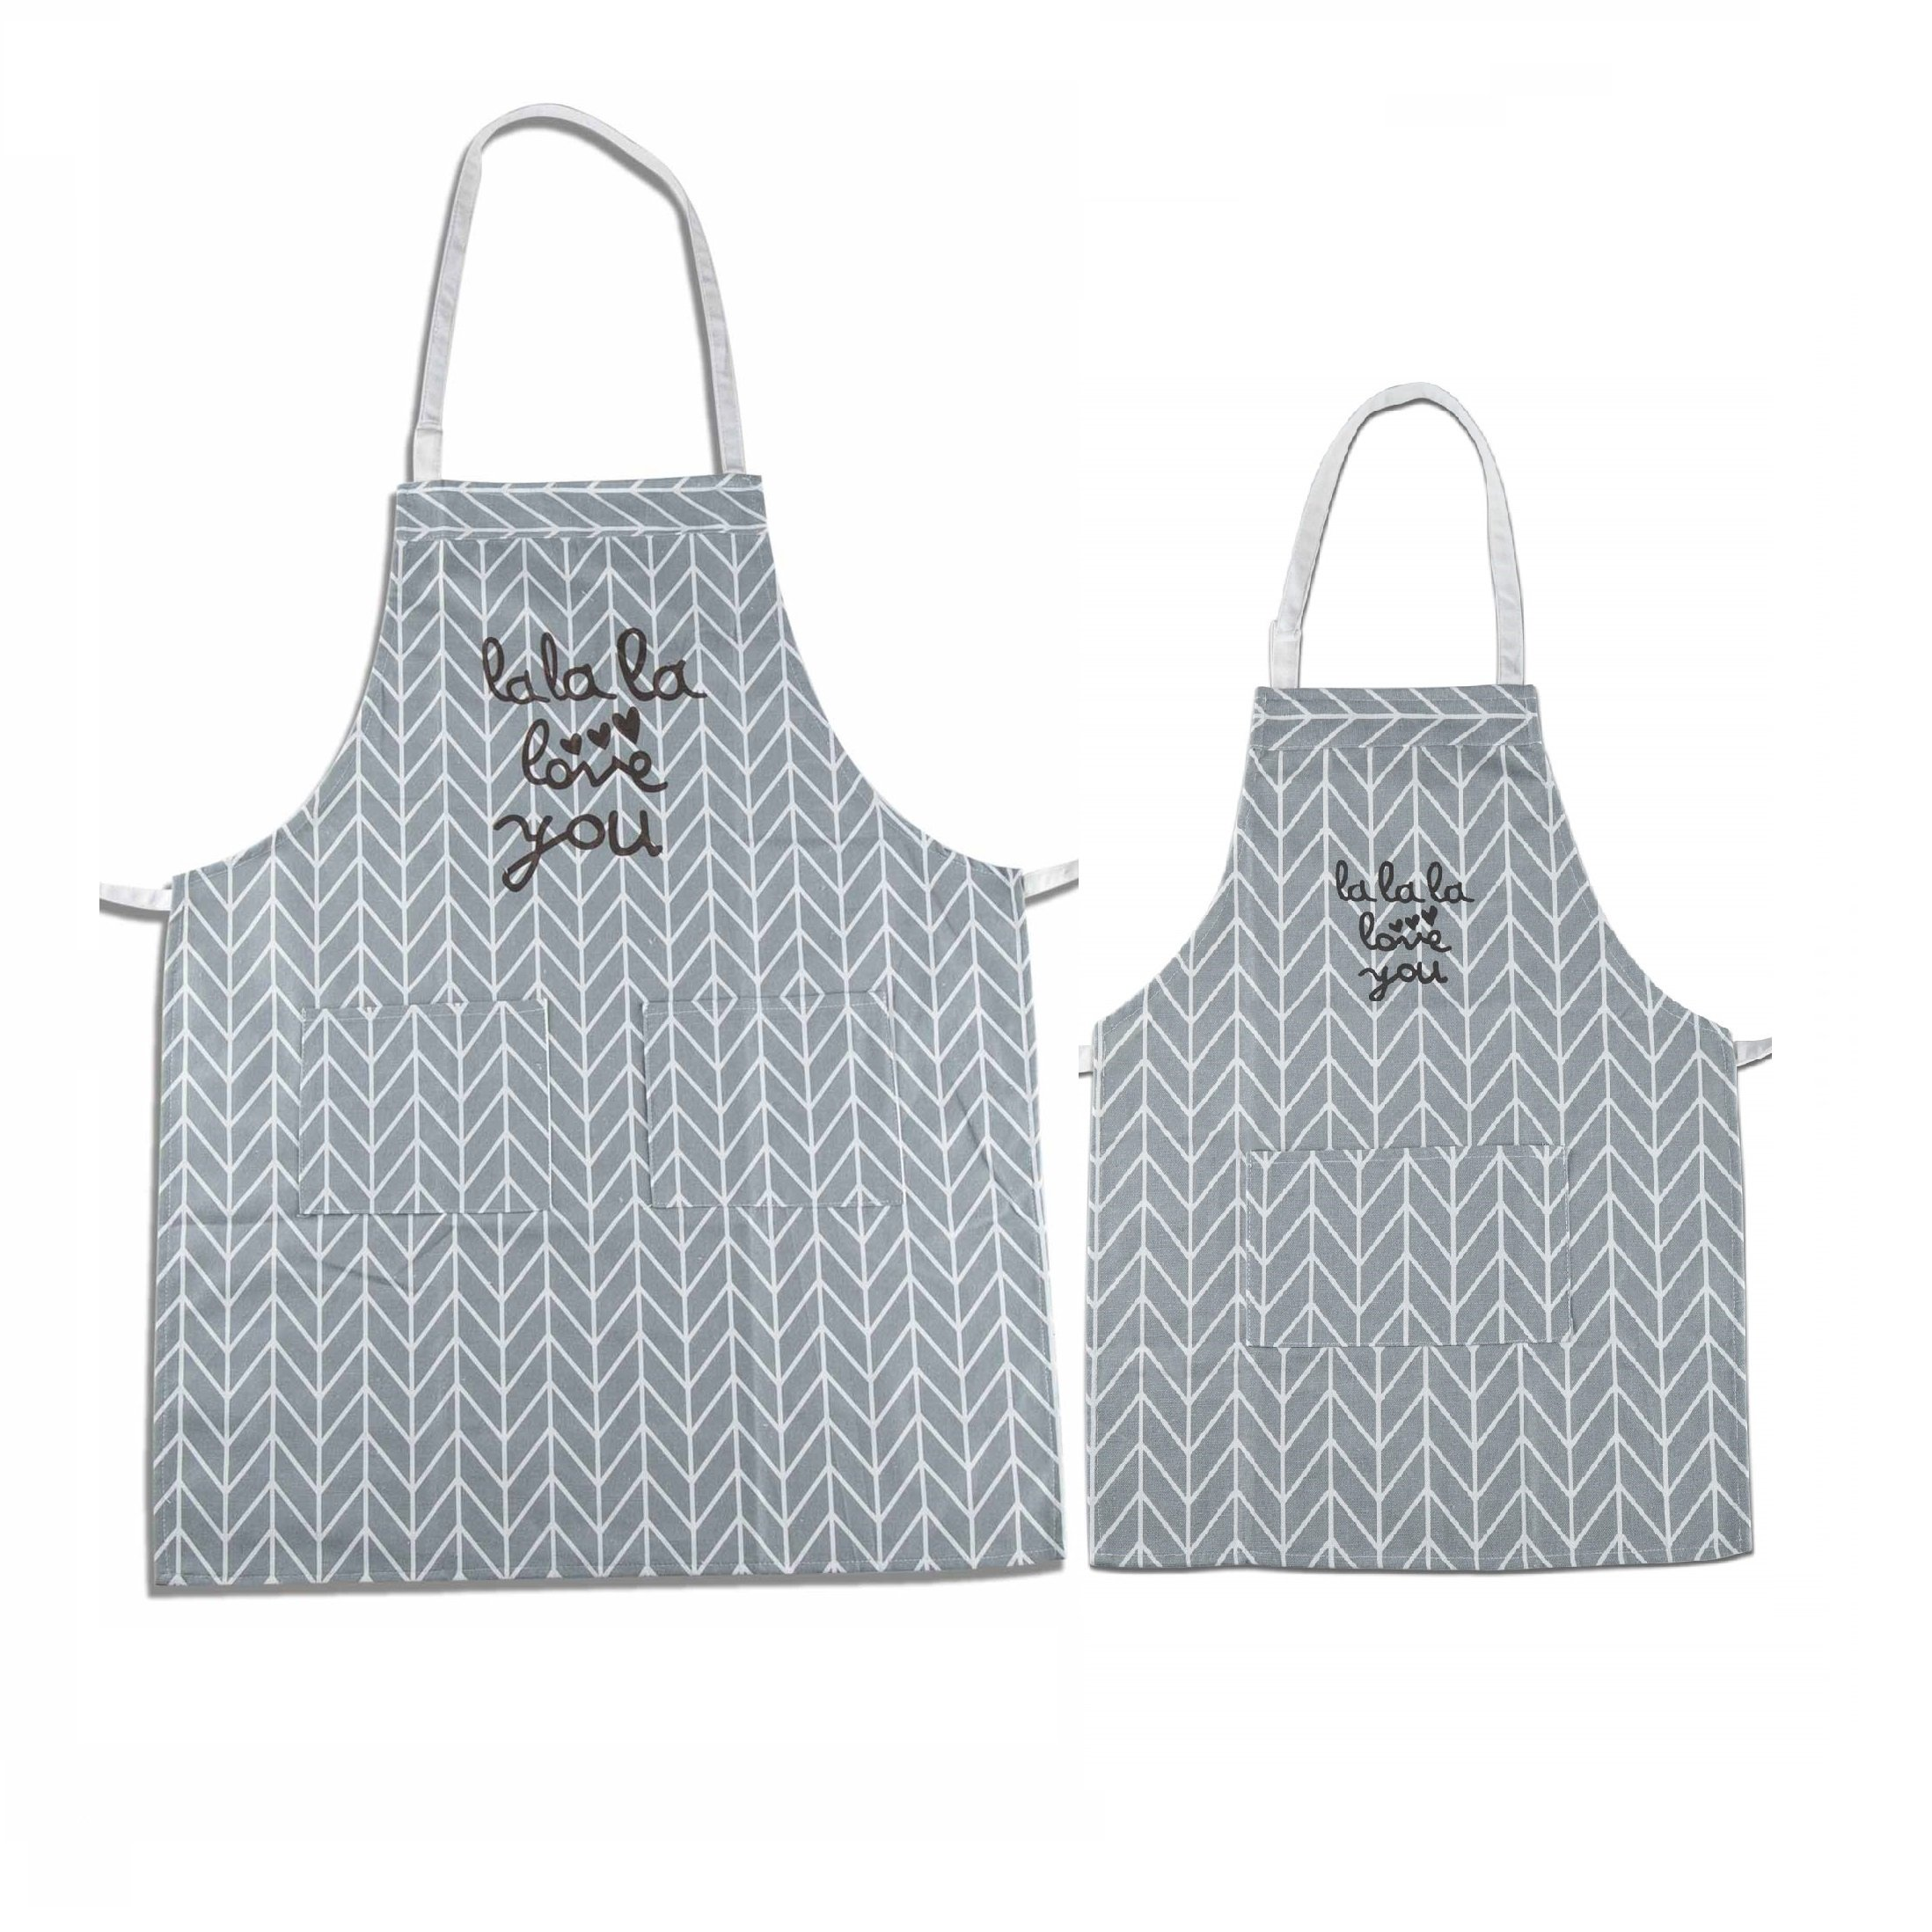 Makimoo Kitchen Bib Apron Set, 2 Pack Adjustable Cotton Linen Chef Cooking Aprons with Pockets For Mom and Daughter Girls Kids, Perfect Gift